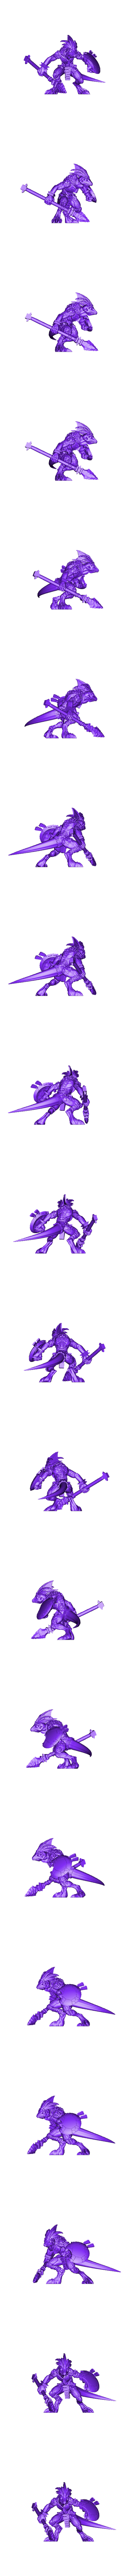 S_Gecko_1_Javelin_Combined.stl Download free STL file Gecko • 3D printing object, onepagerules